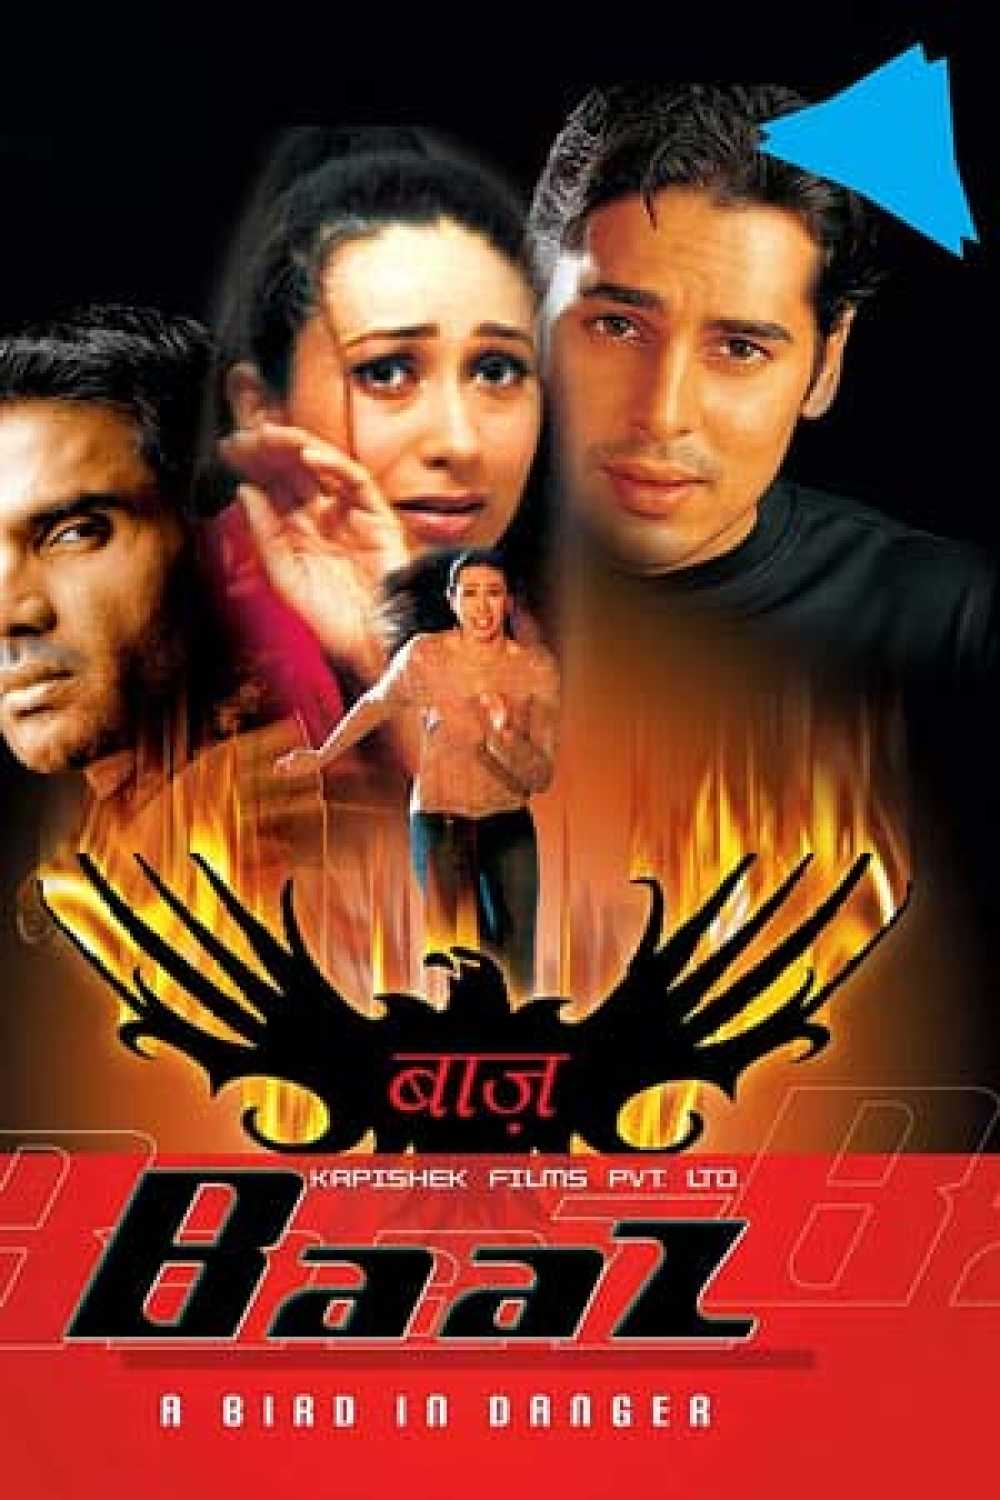 Baaz A Bird in Danger 2003 Hindi 500MB HDRip ESubs Download